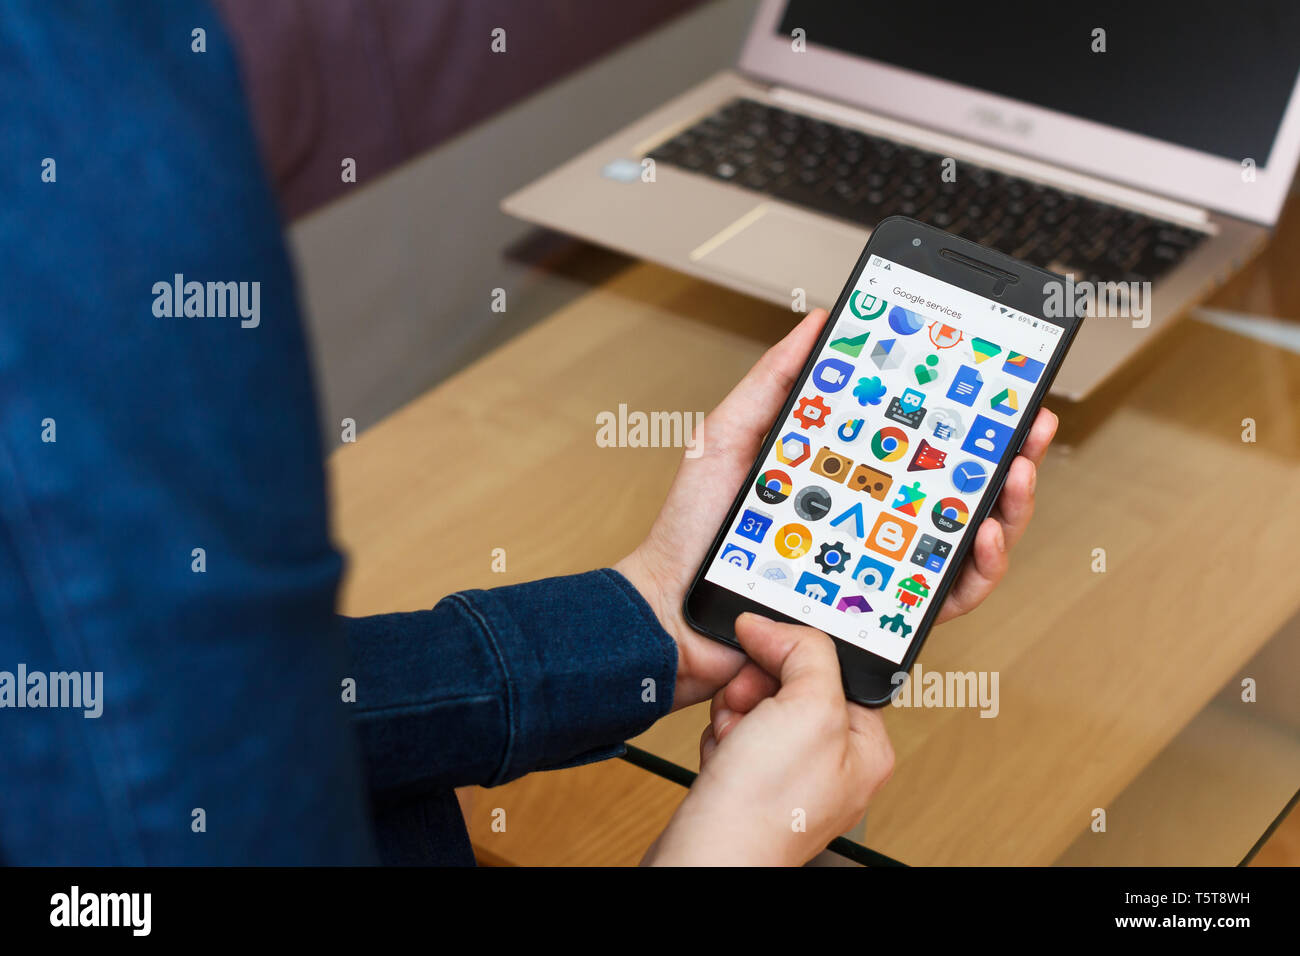 SAN FRANCISCO, US - 22 April 2019: Close up to female hands holding smartphone using Google Services and Applications, San Francisco, California, USA - Stock Image